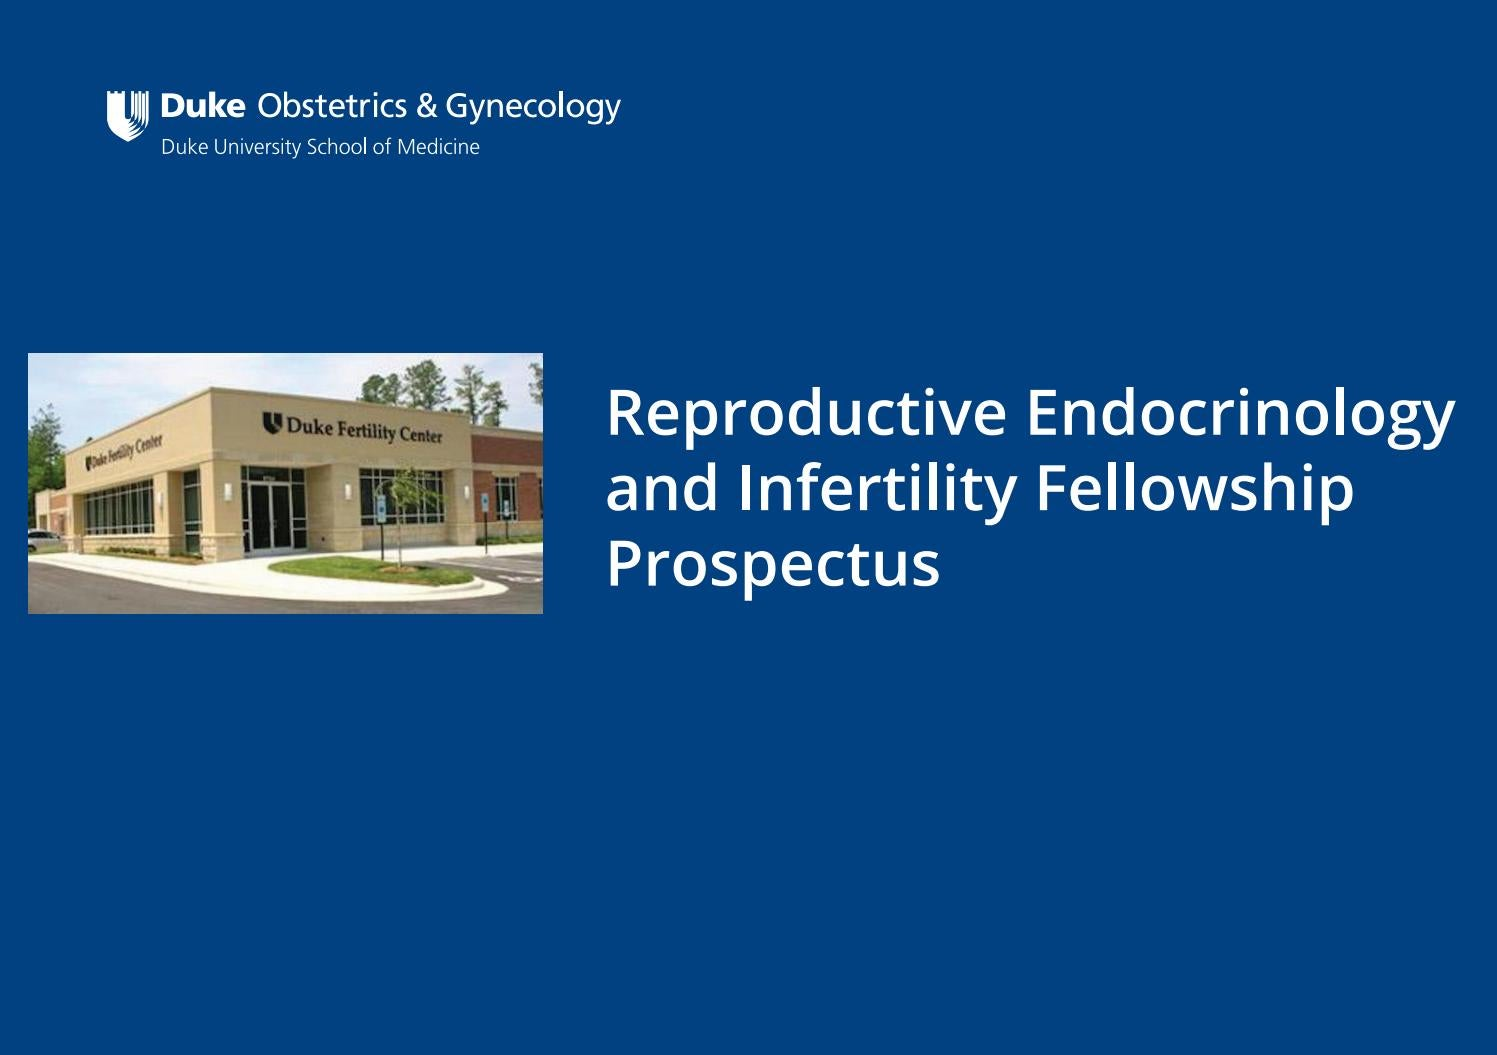 Duke Ob/Gyn Reproductive Endocrinology and Infertility